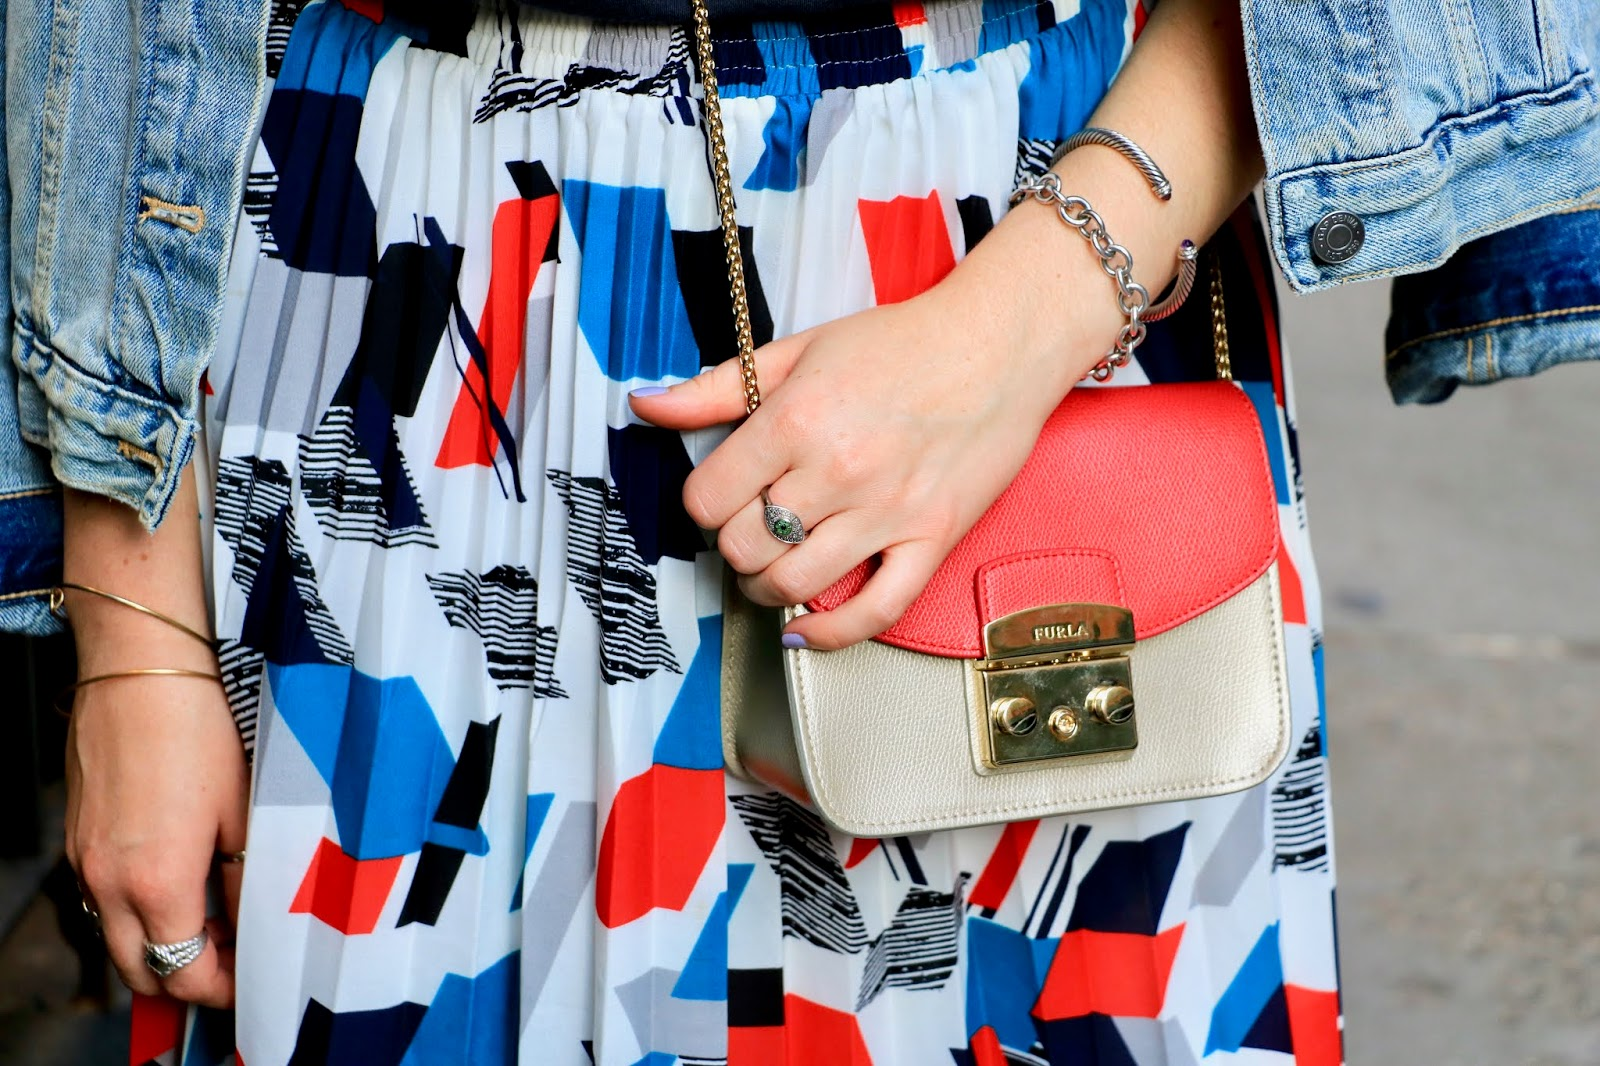 Nyc fashion blogger Kathleen Harper's red Furla purse